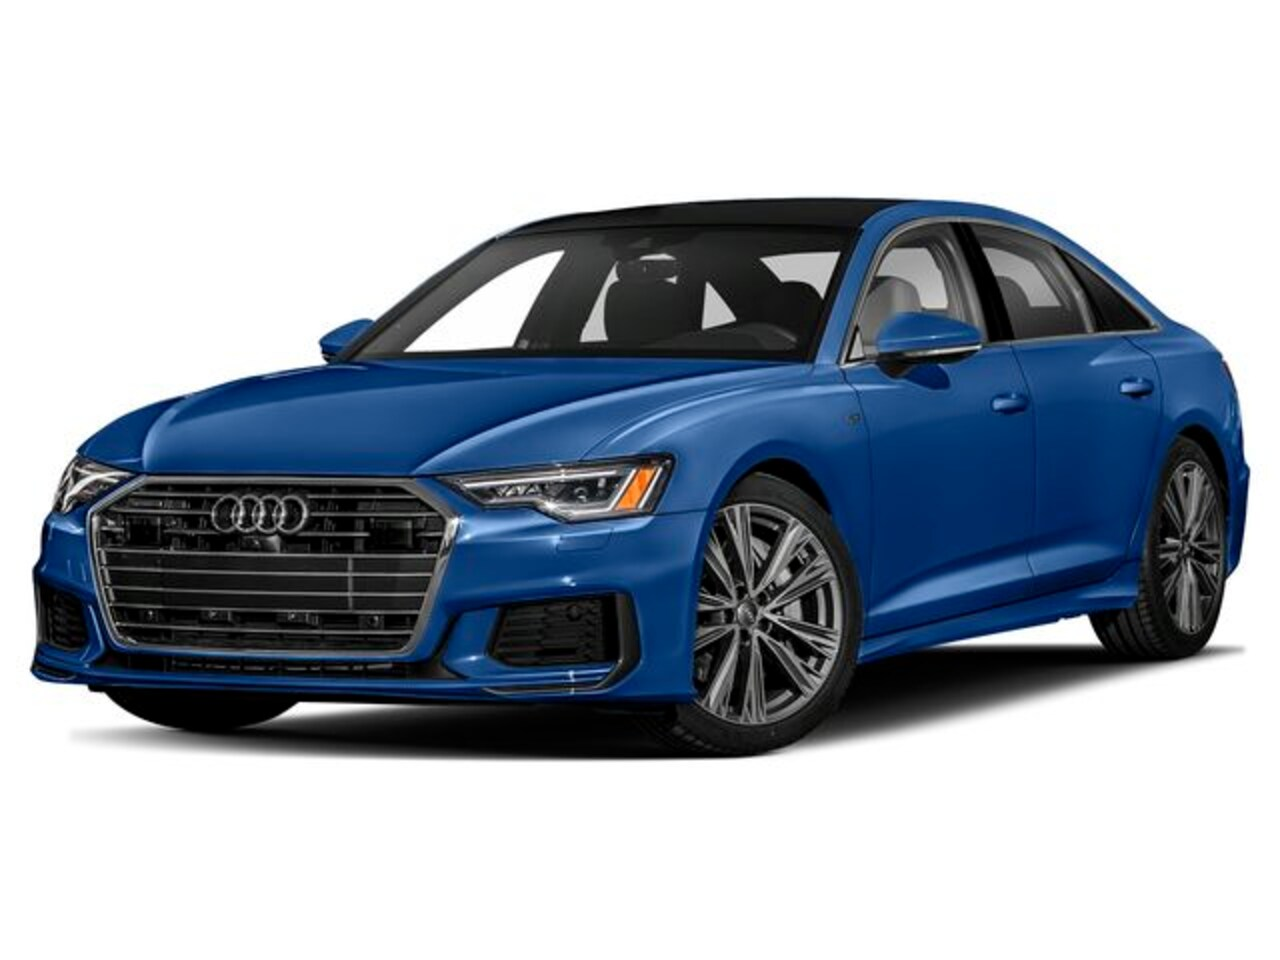 2019 Audi A6 3.0T Technik Quattro 7sp S Tronic Sedan